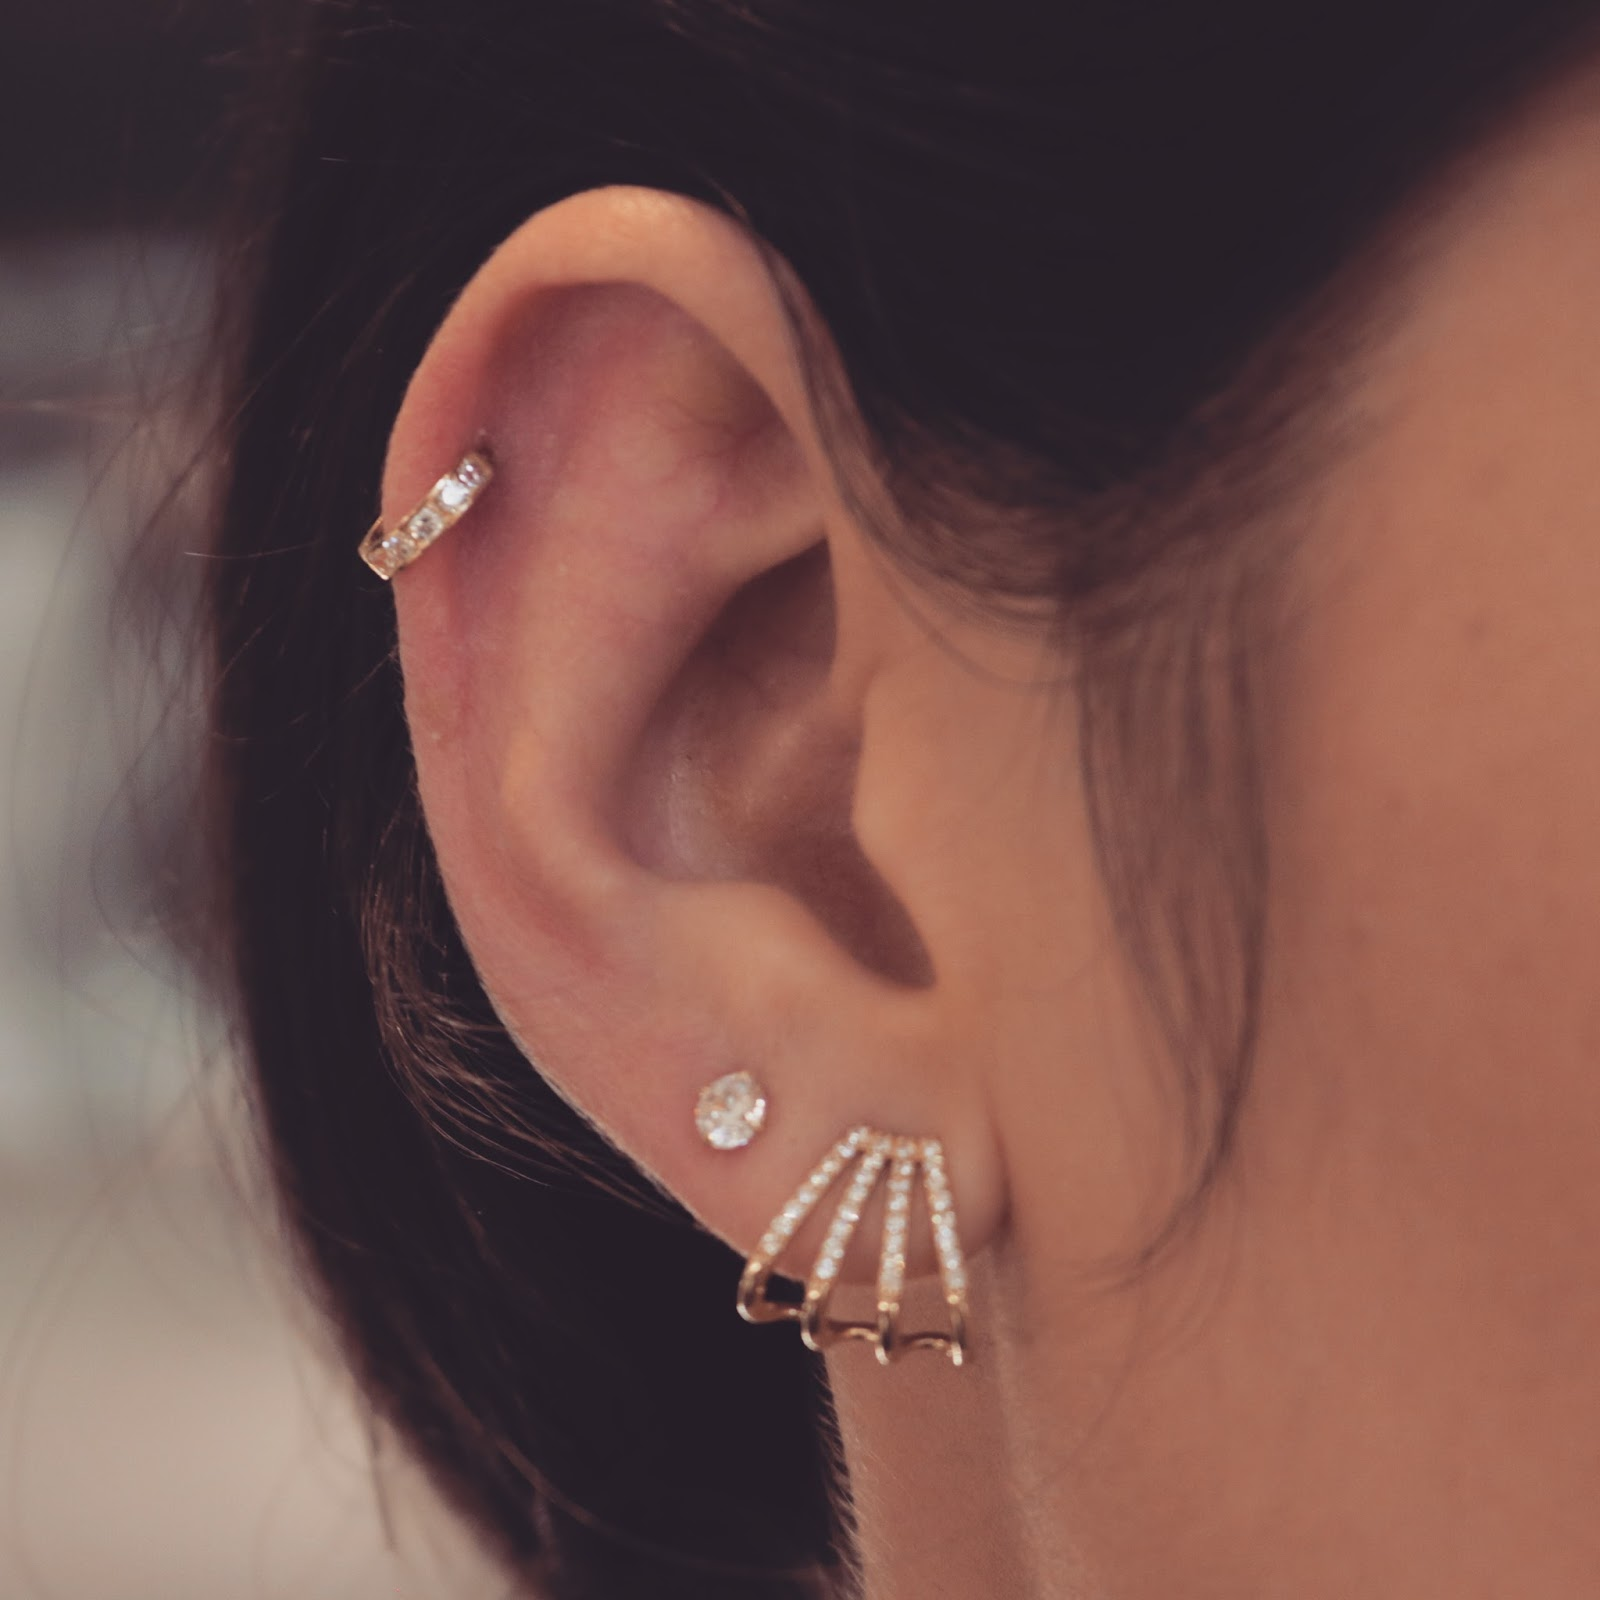 Hello Crisst Earrings For Cartilage